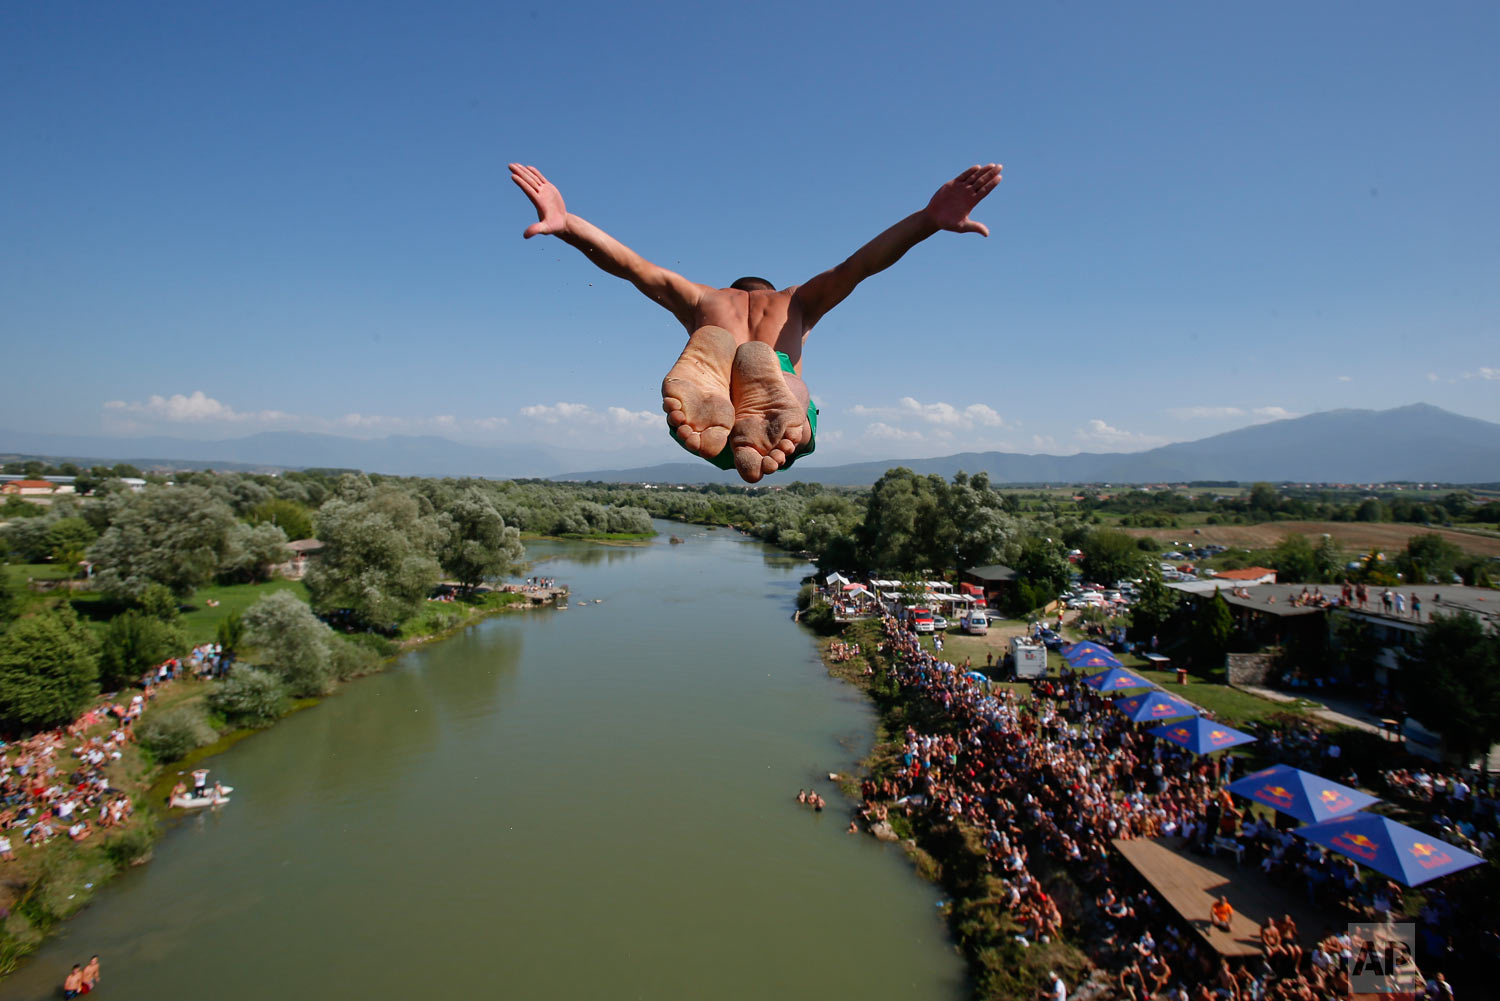 Spectators watch from the river banks as a diver launches from the Ura e Shejnt bridge during the 68th annual high diving competition, near the town of Gjakova, Kosovo on Sunday, July 22, 2018. (AP Photo/Visar Kryeziu)